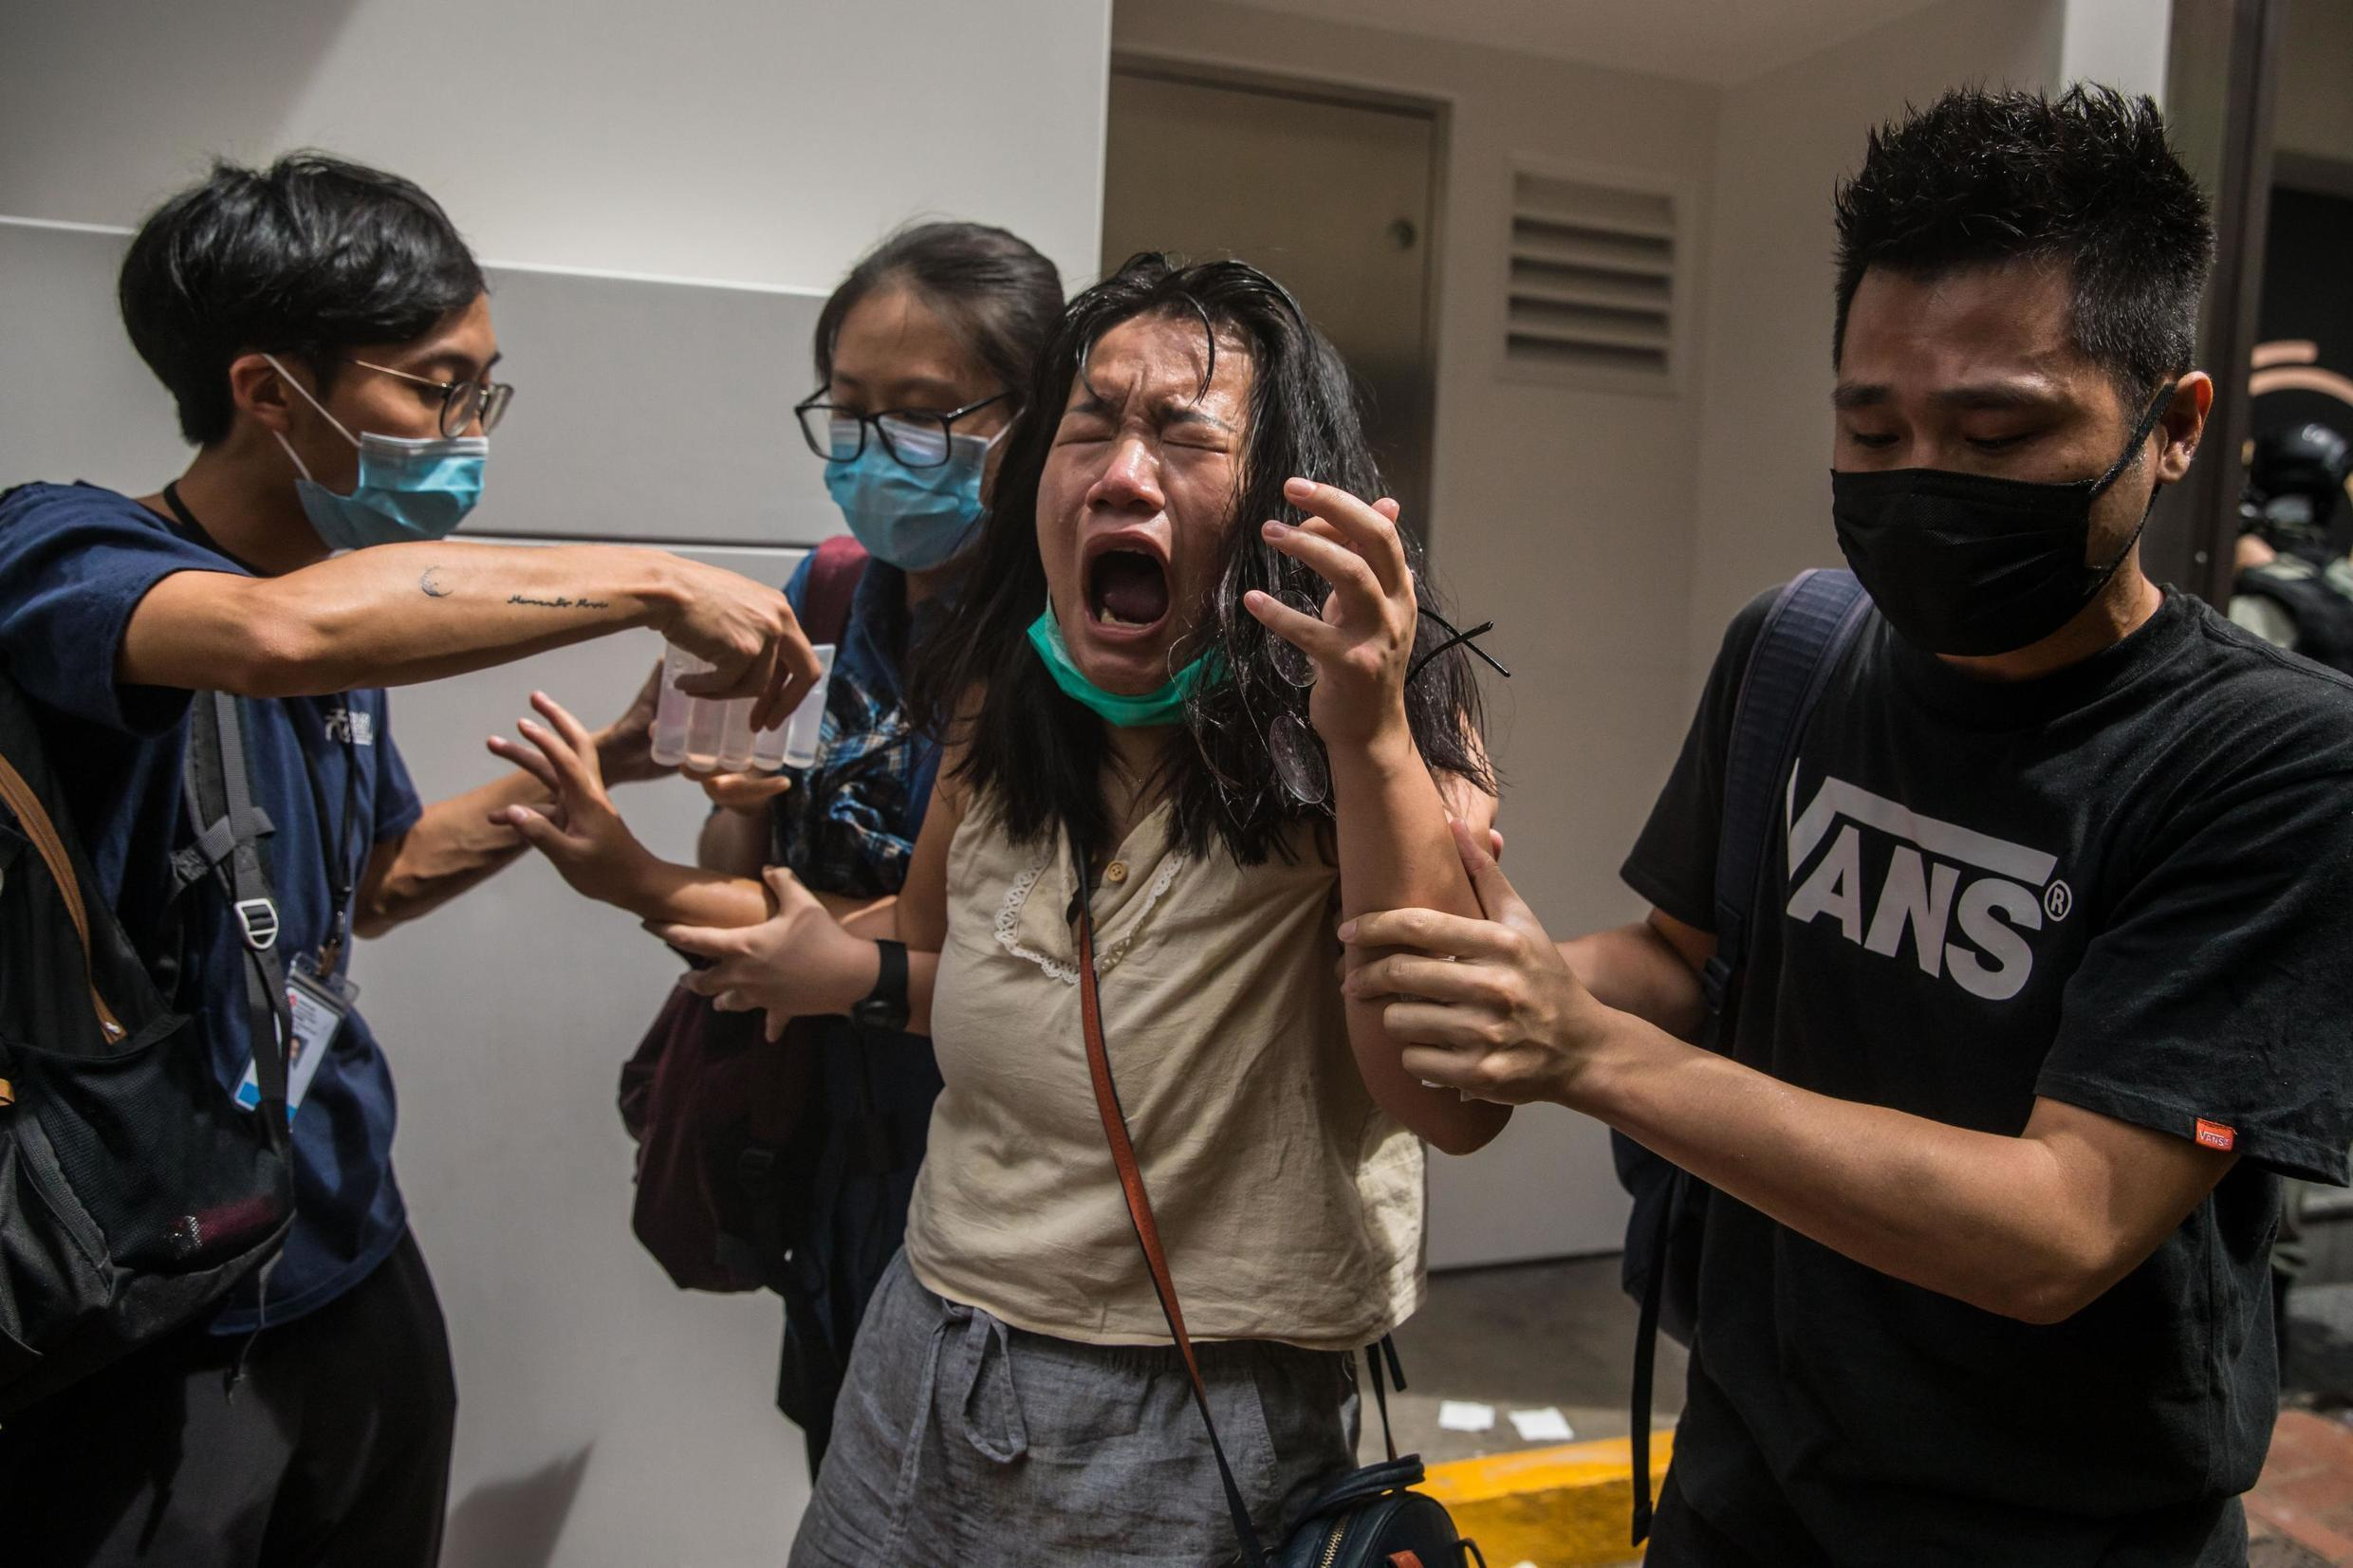 Woman reacts to tear gas sprayed by police at a pro-democracy rally in Hong Kong, on the 23rd anniversary of British handover to China. 1 July 2020.